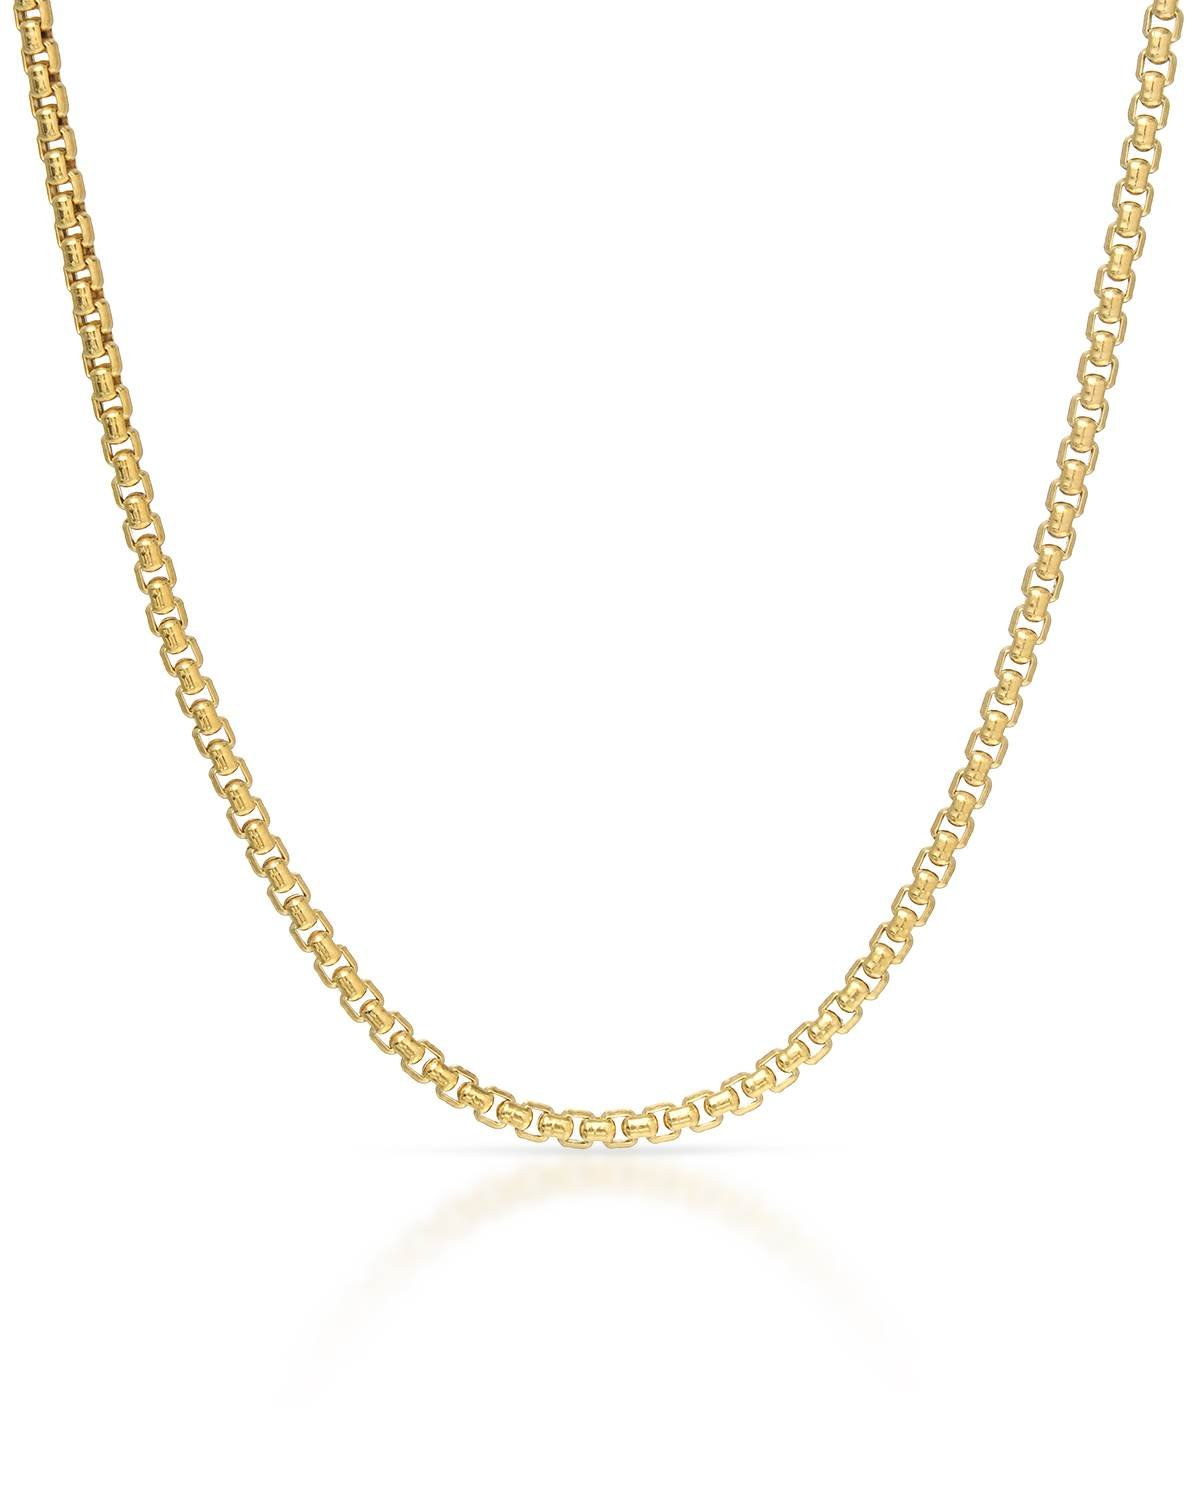 MCS Jewelry 14 Karat Yellow or White Gold Box Rolo Chain Necklace 1.7mm (Size: 18''-24'') (24, yellow-gold) by MCS Jewelry (Image #1)